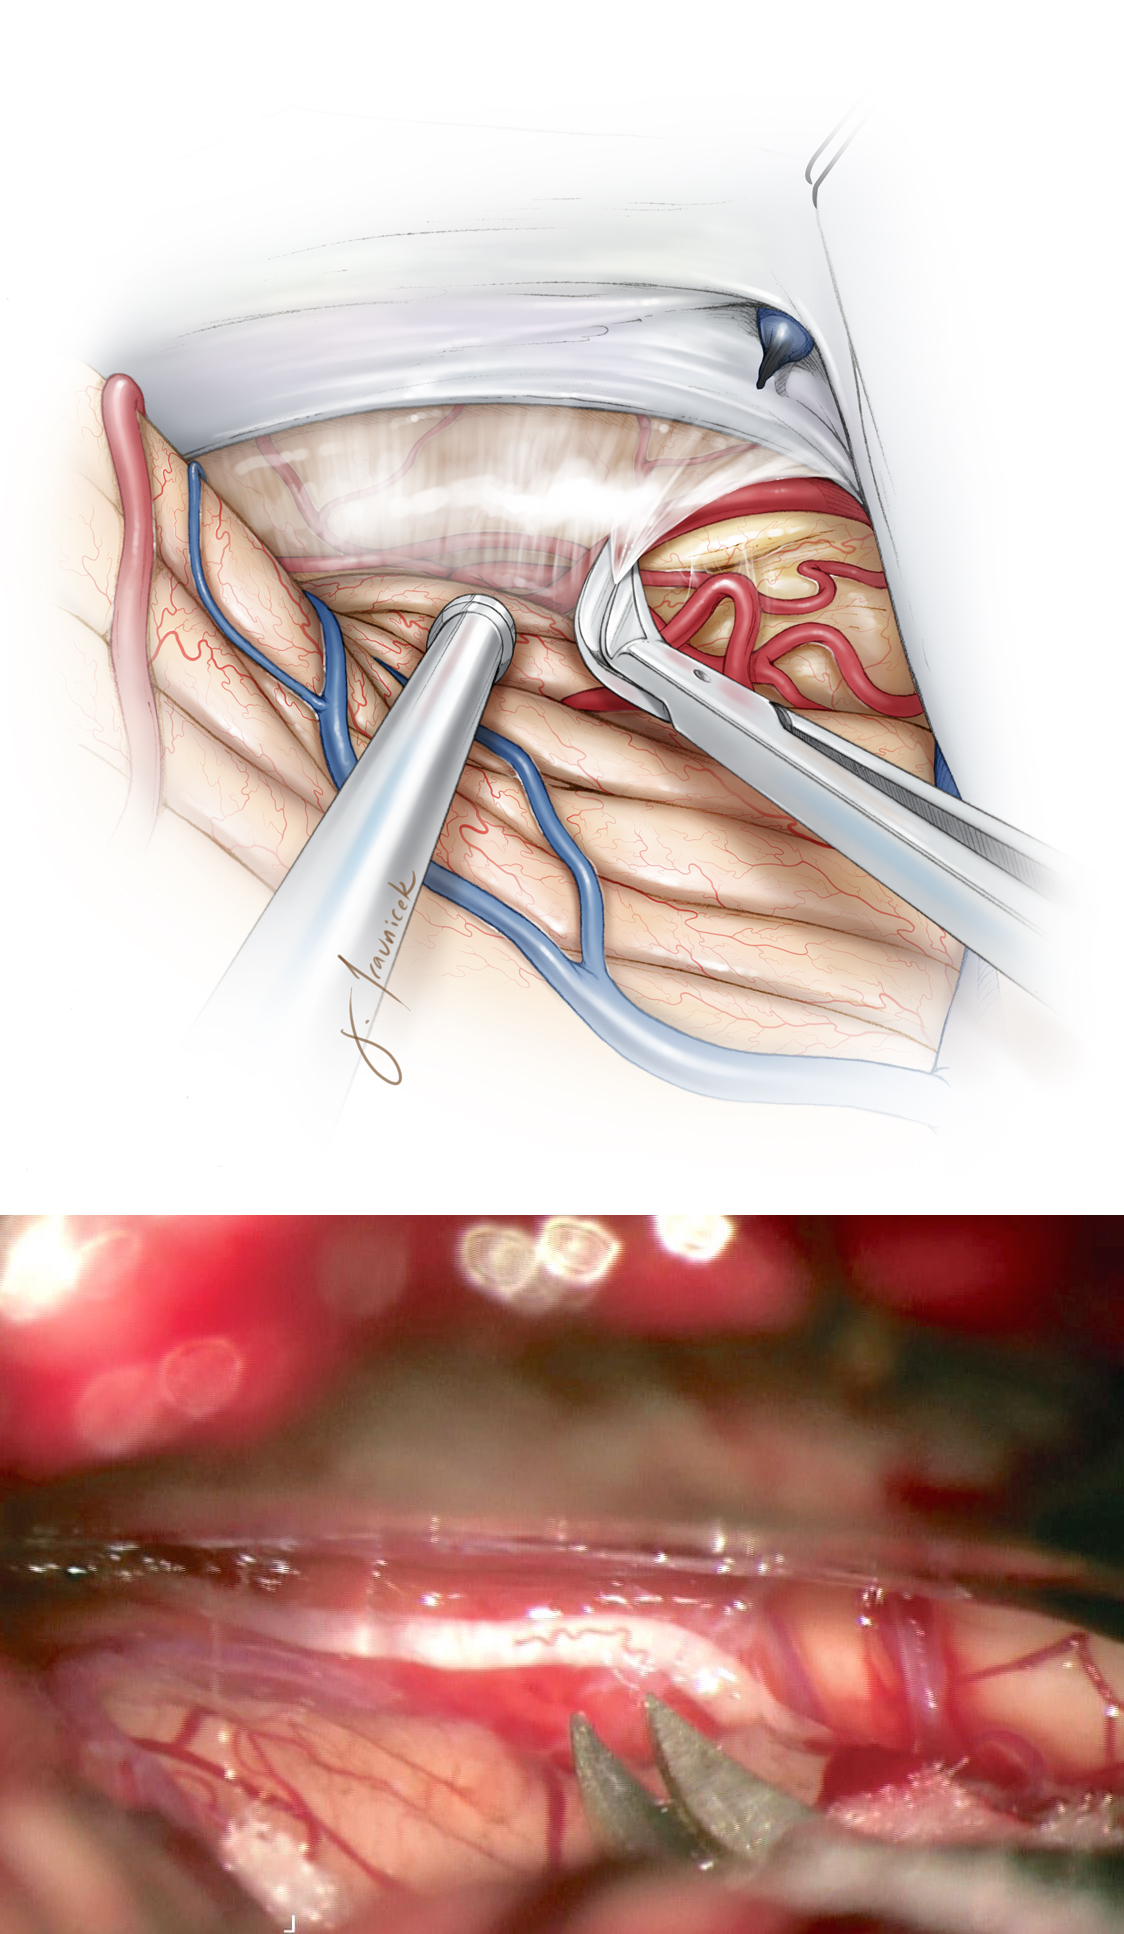 Figure 3: Dissection of the arachnoid membranes over the dorsolateral mesencephalon will mobilize the cerebellum downward and open the corridor toward the midline. The trochlear nerve is evident in the inferolateral corner of the exposure.